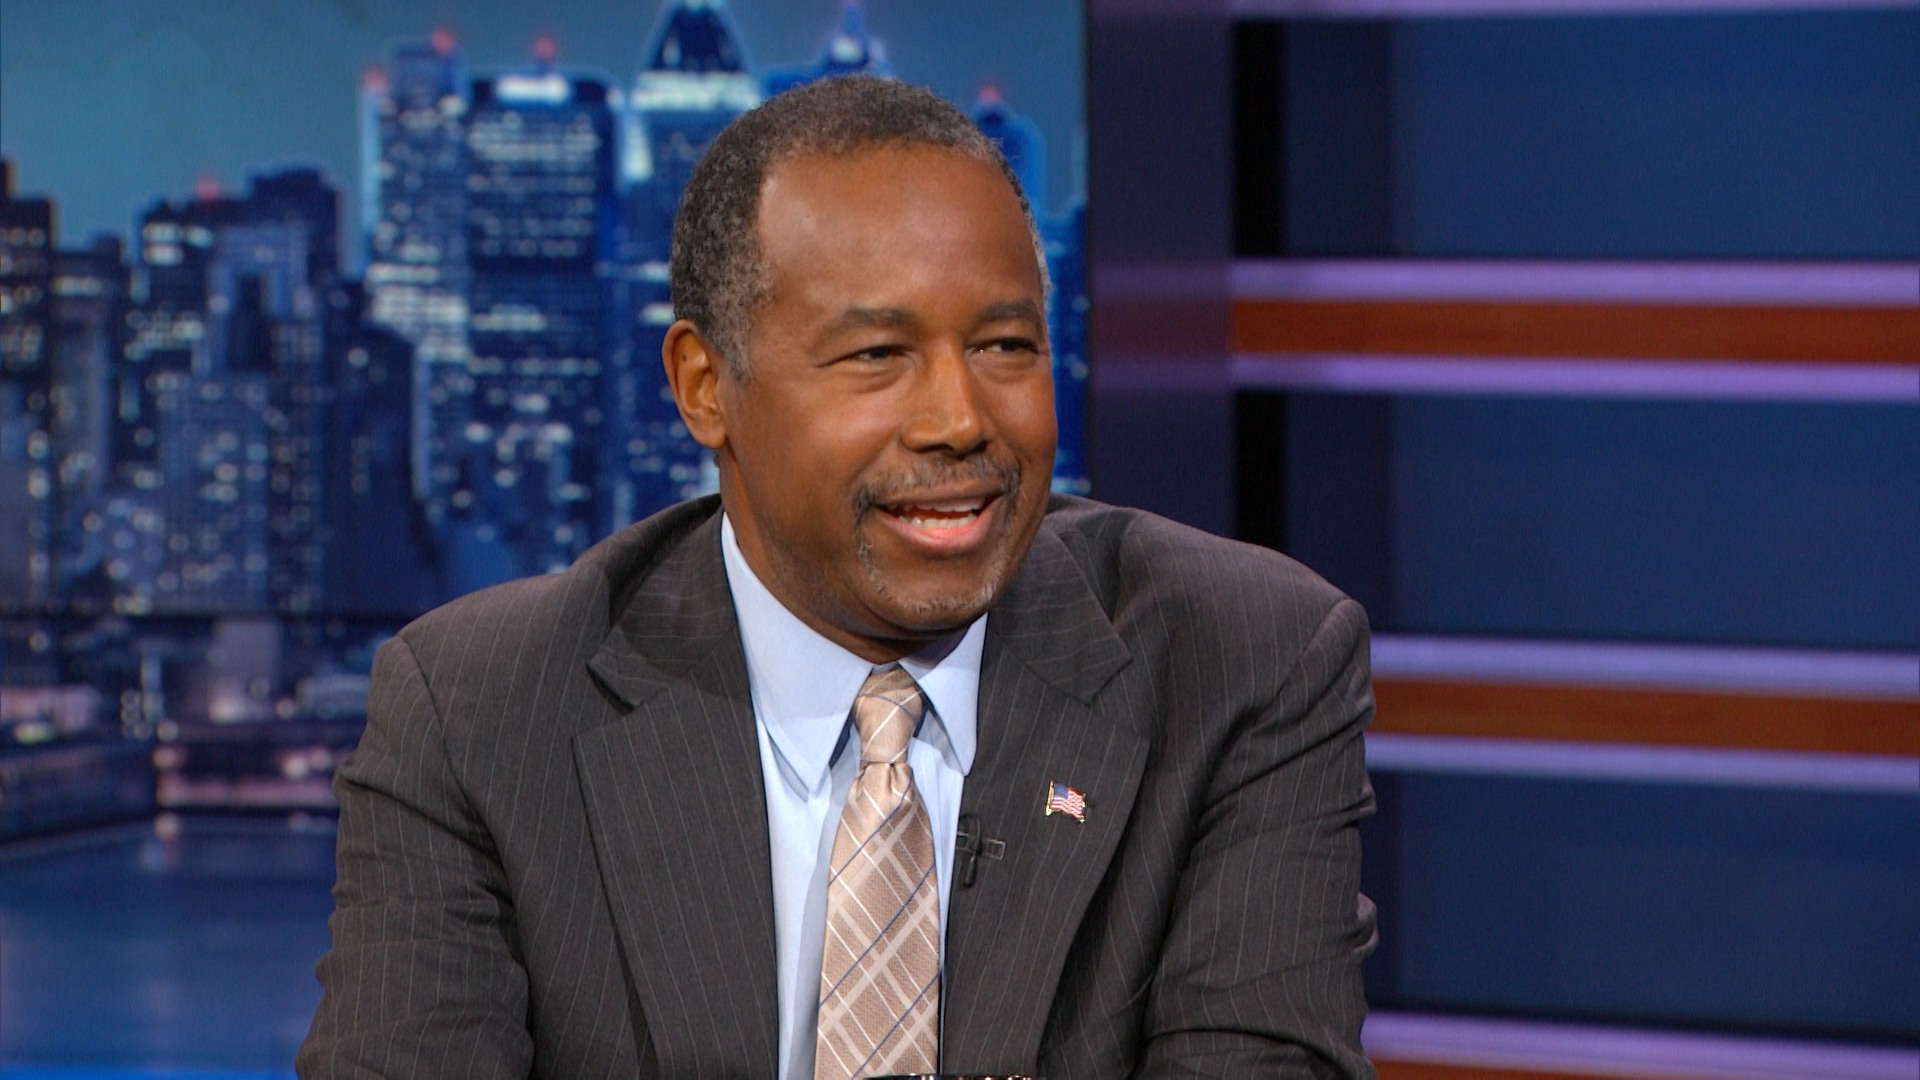 - DR. BEN CARSON EXTENDED INTERVIEW